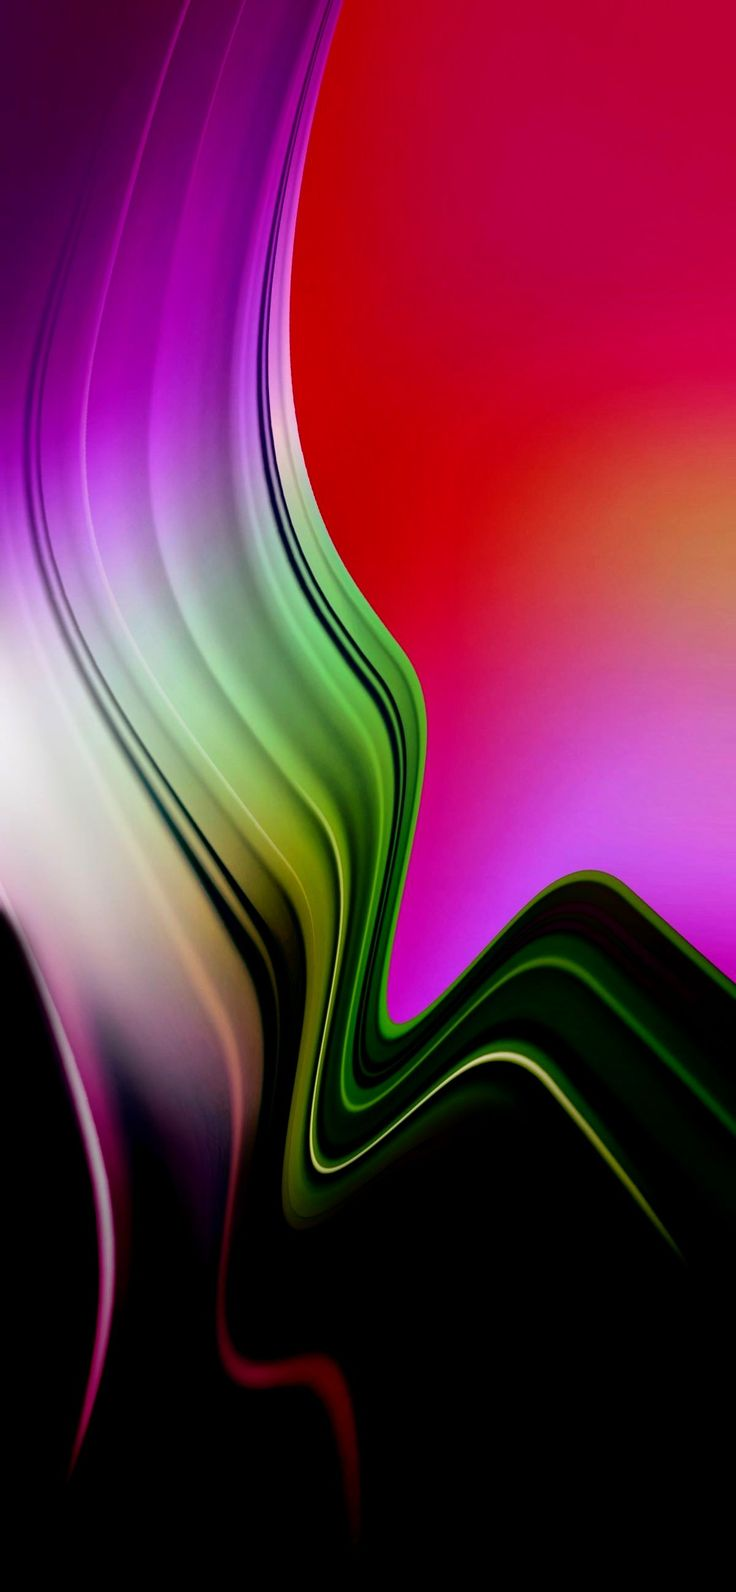 Abstract HD Wallpapers 394205773631764401 6